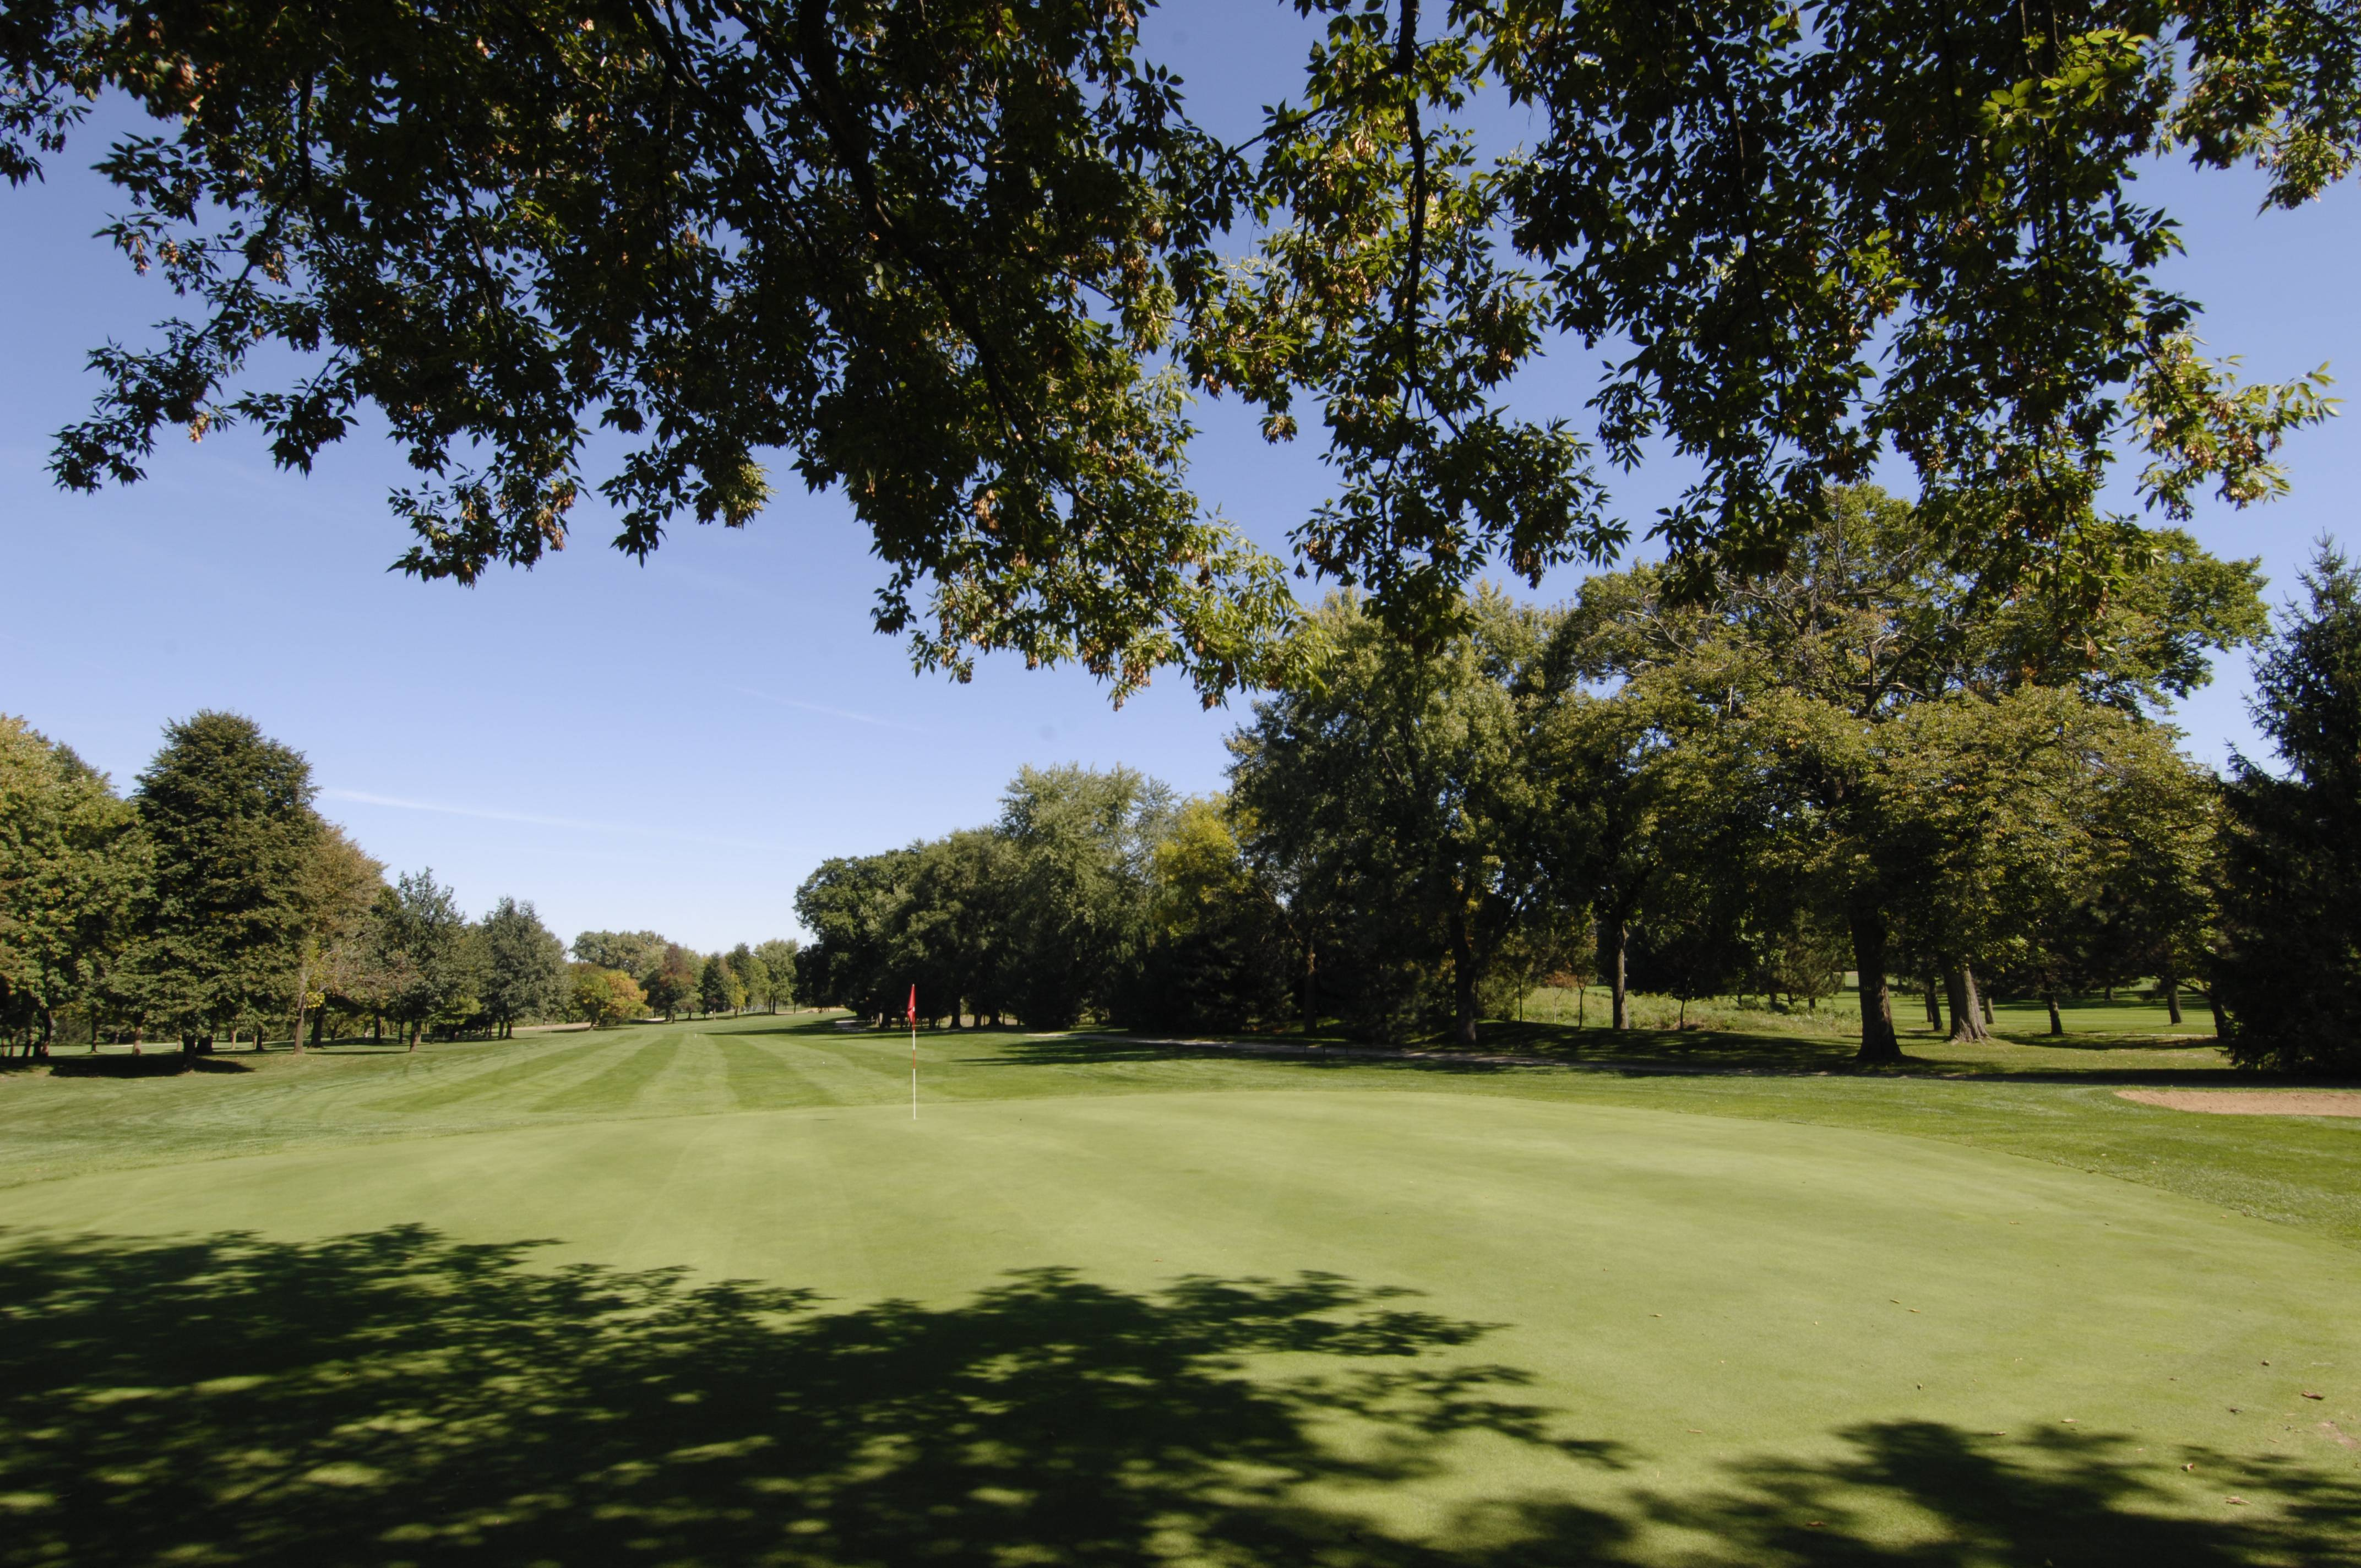 White Pines Golf Club disconnected from Bensenville in 2003. Now park district and village officials are talking about the possibility of having the 36-hole golf course annexed.